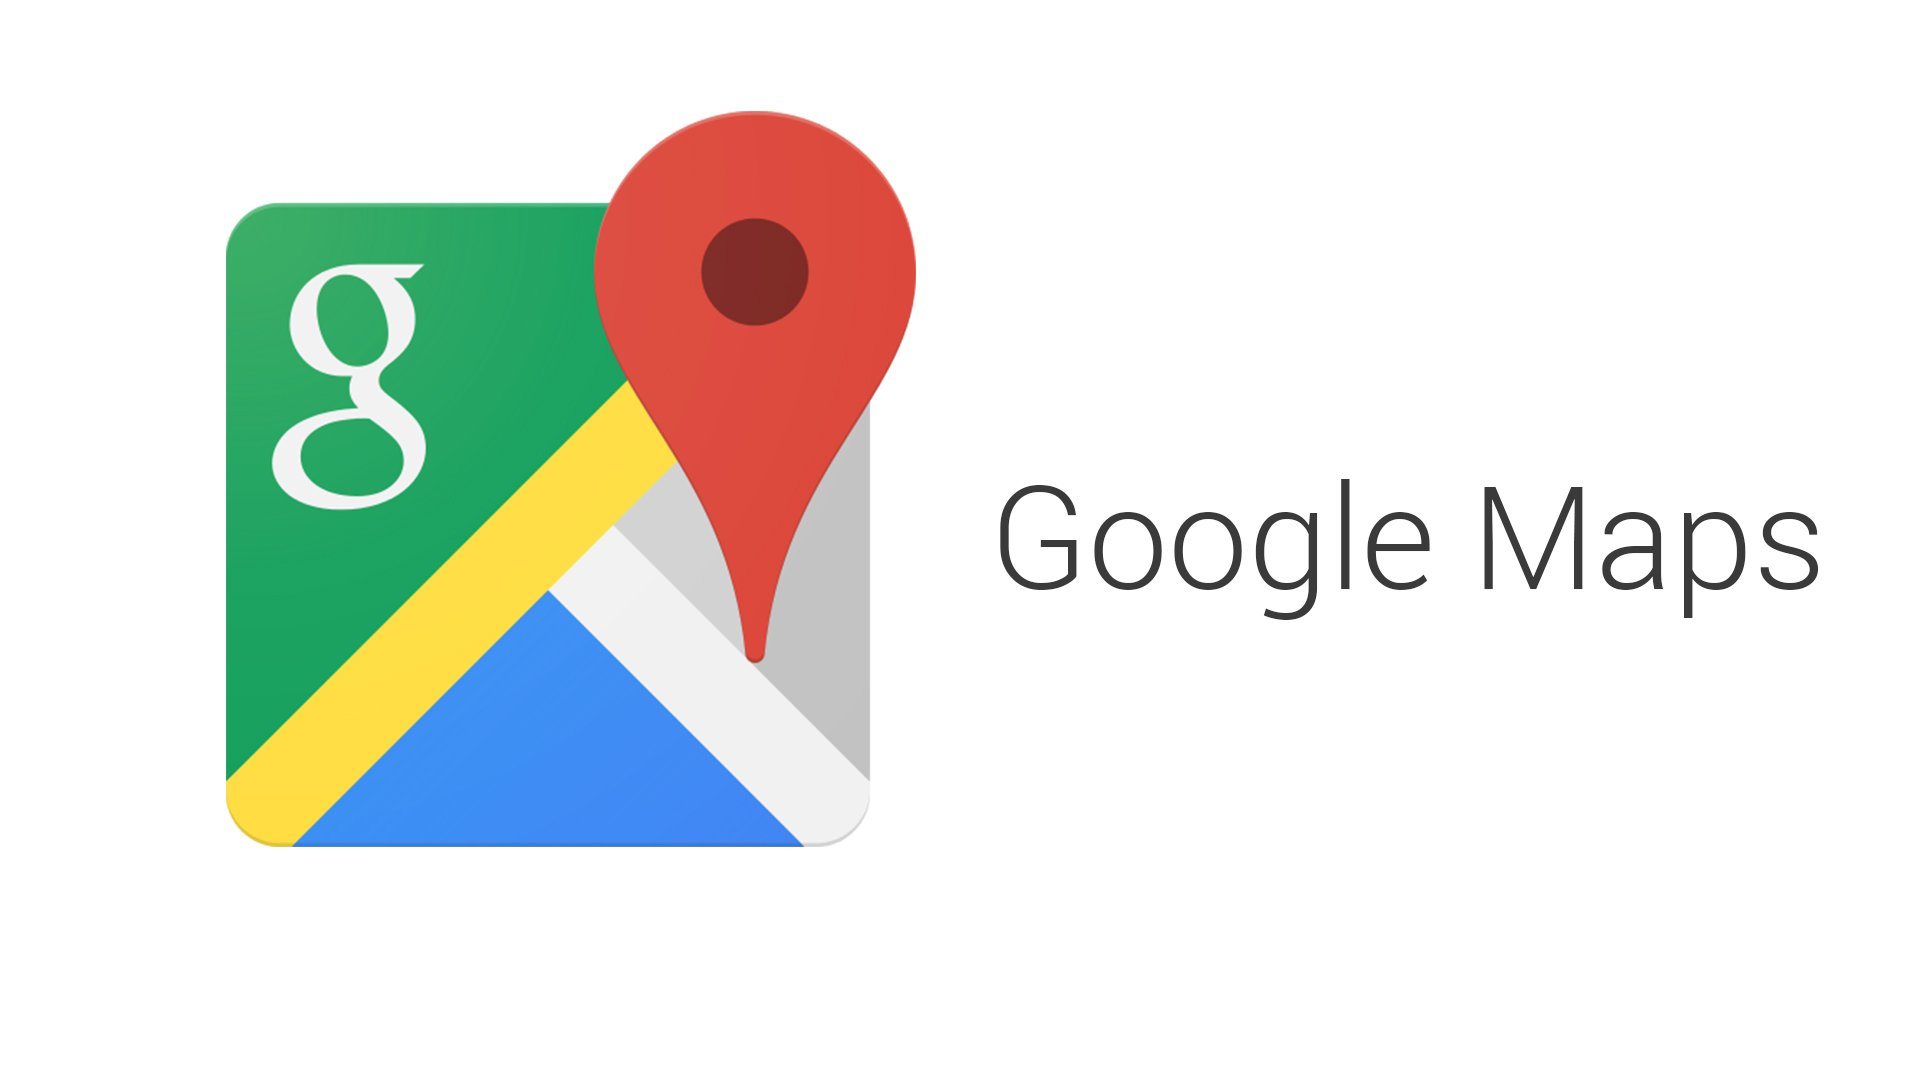 Google Maps Updated With Support for the iPhone X